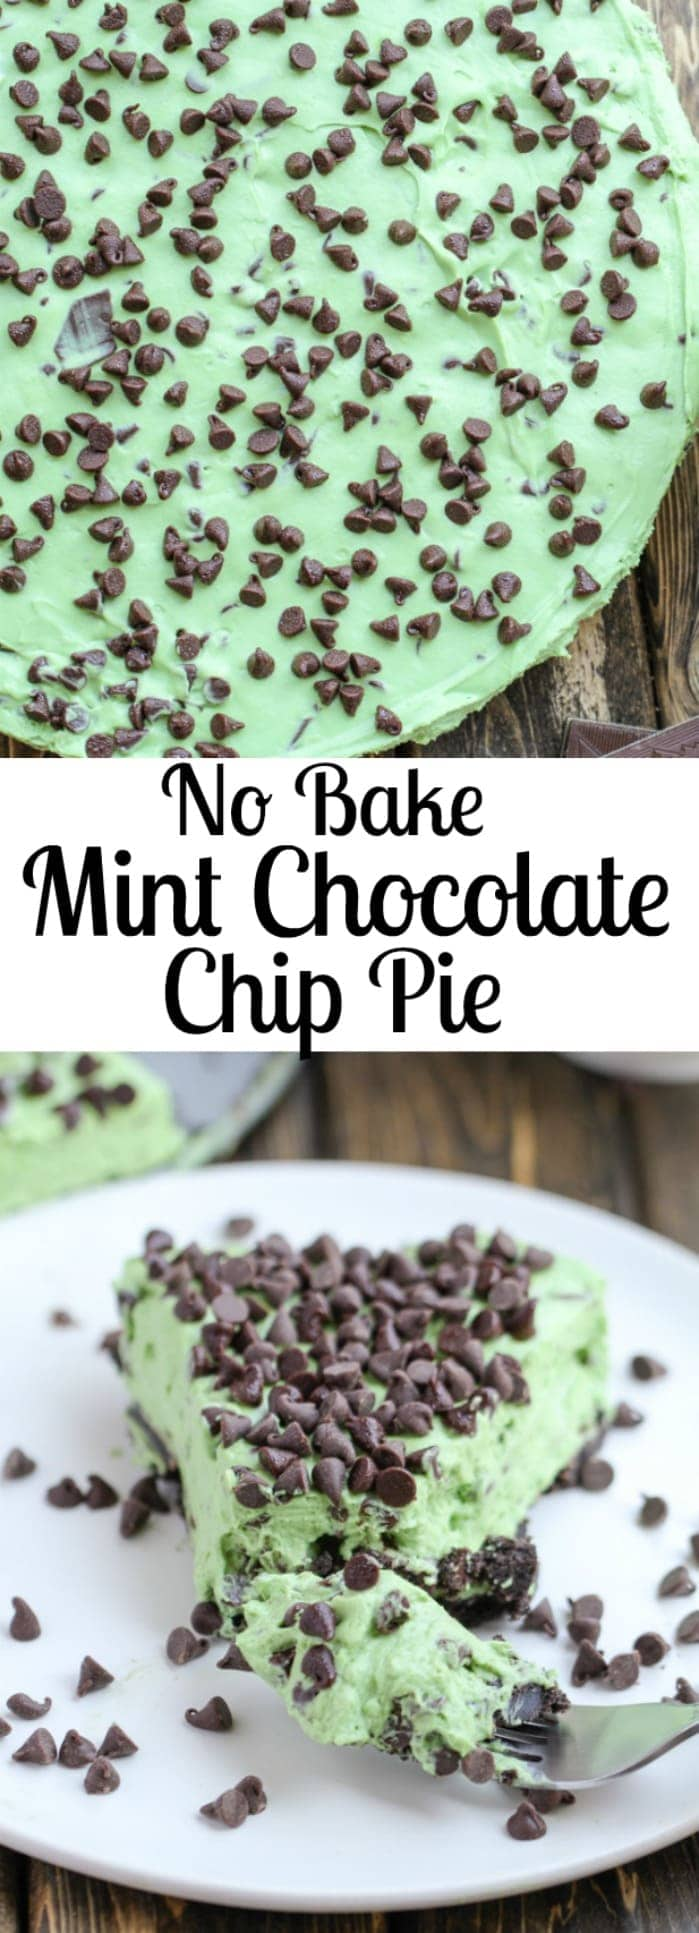 This No Bake Mint Chocolate Chip Pie is fast, easy, and filled with chocolate chips and mint candies. It's the perfect summer night treat!